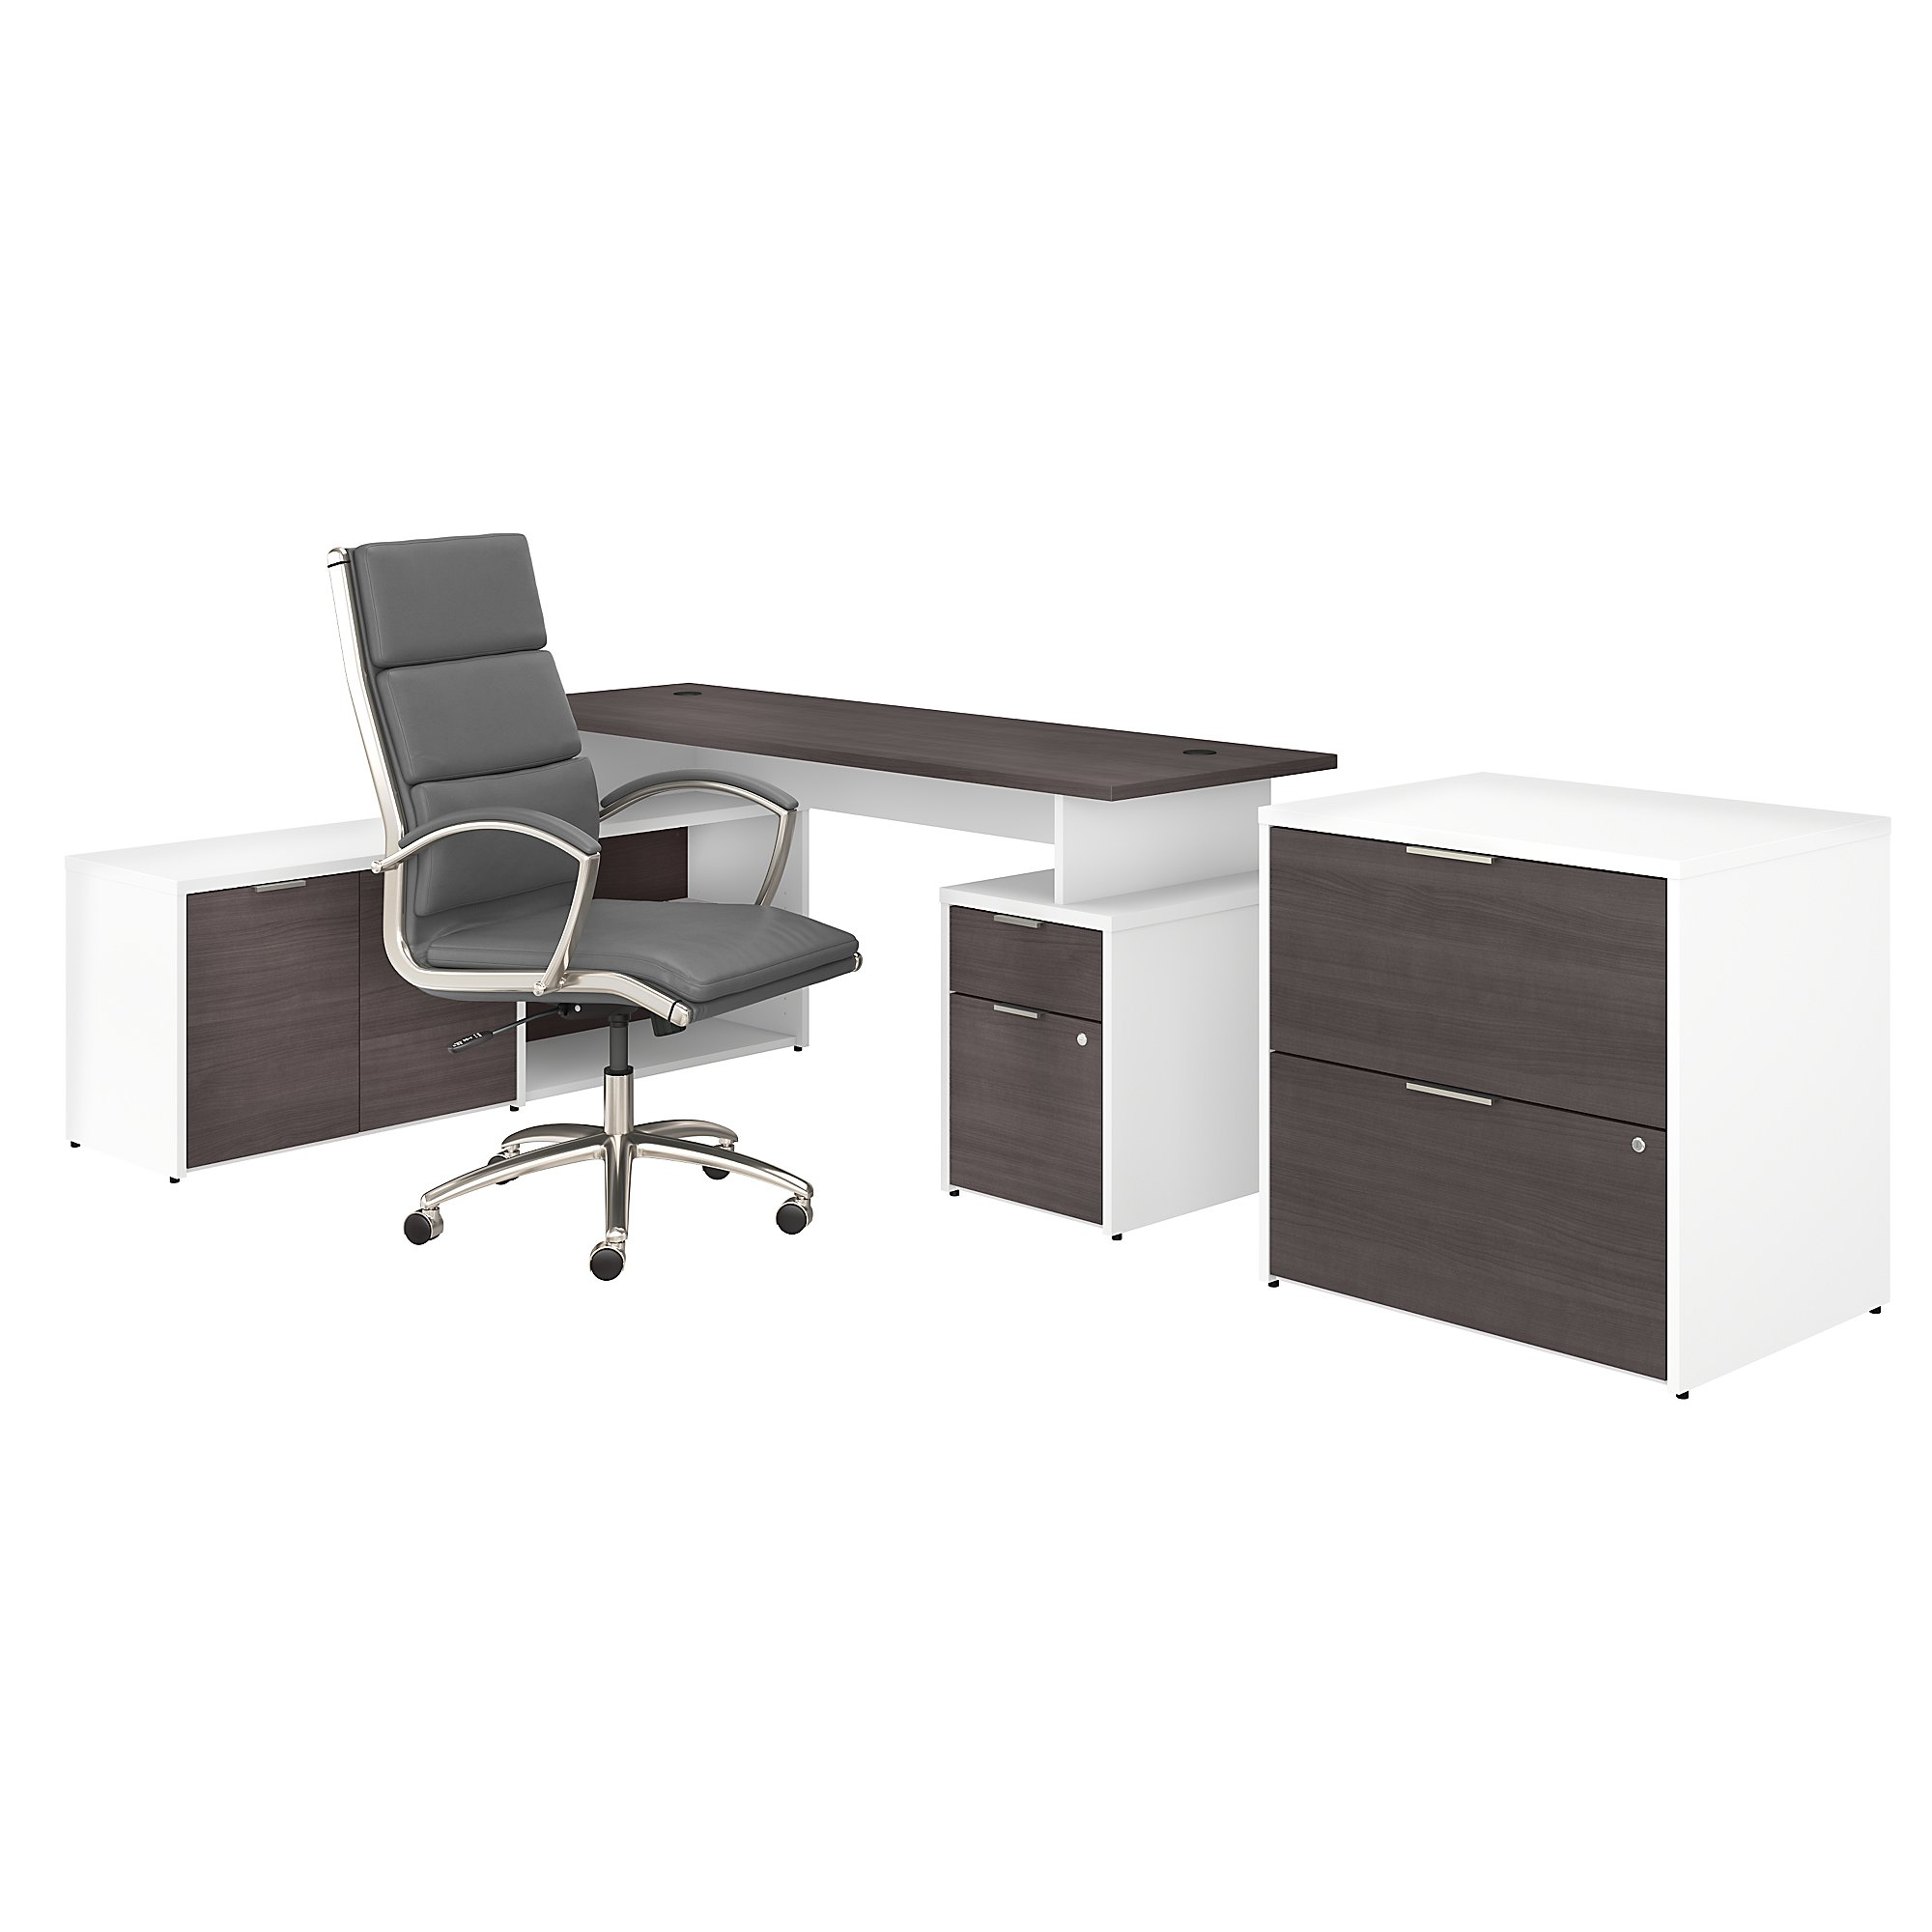 jamestown storm gray and white desk configuration with chair